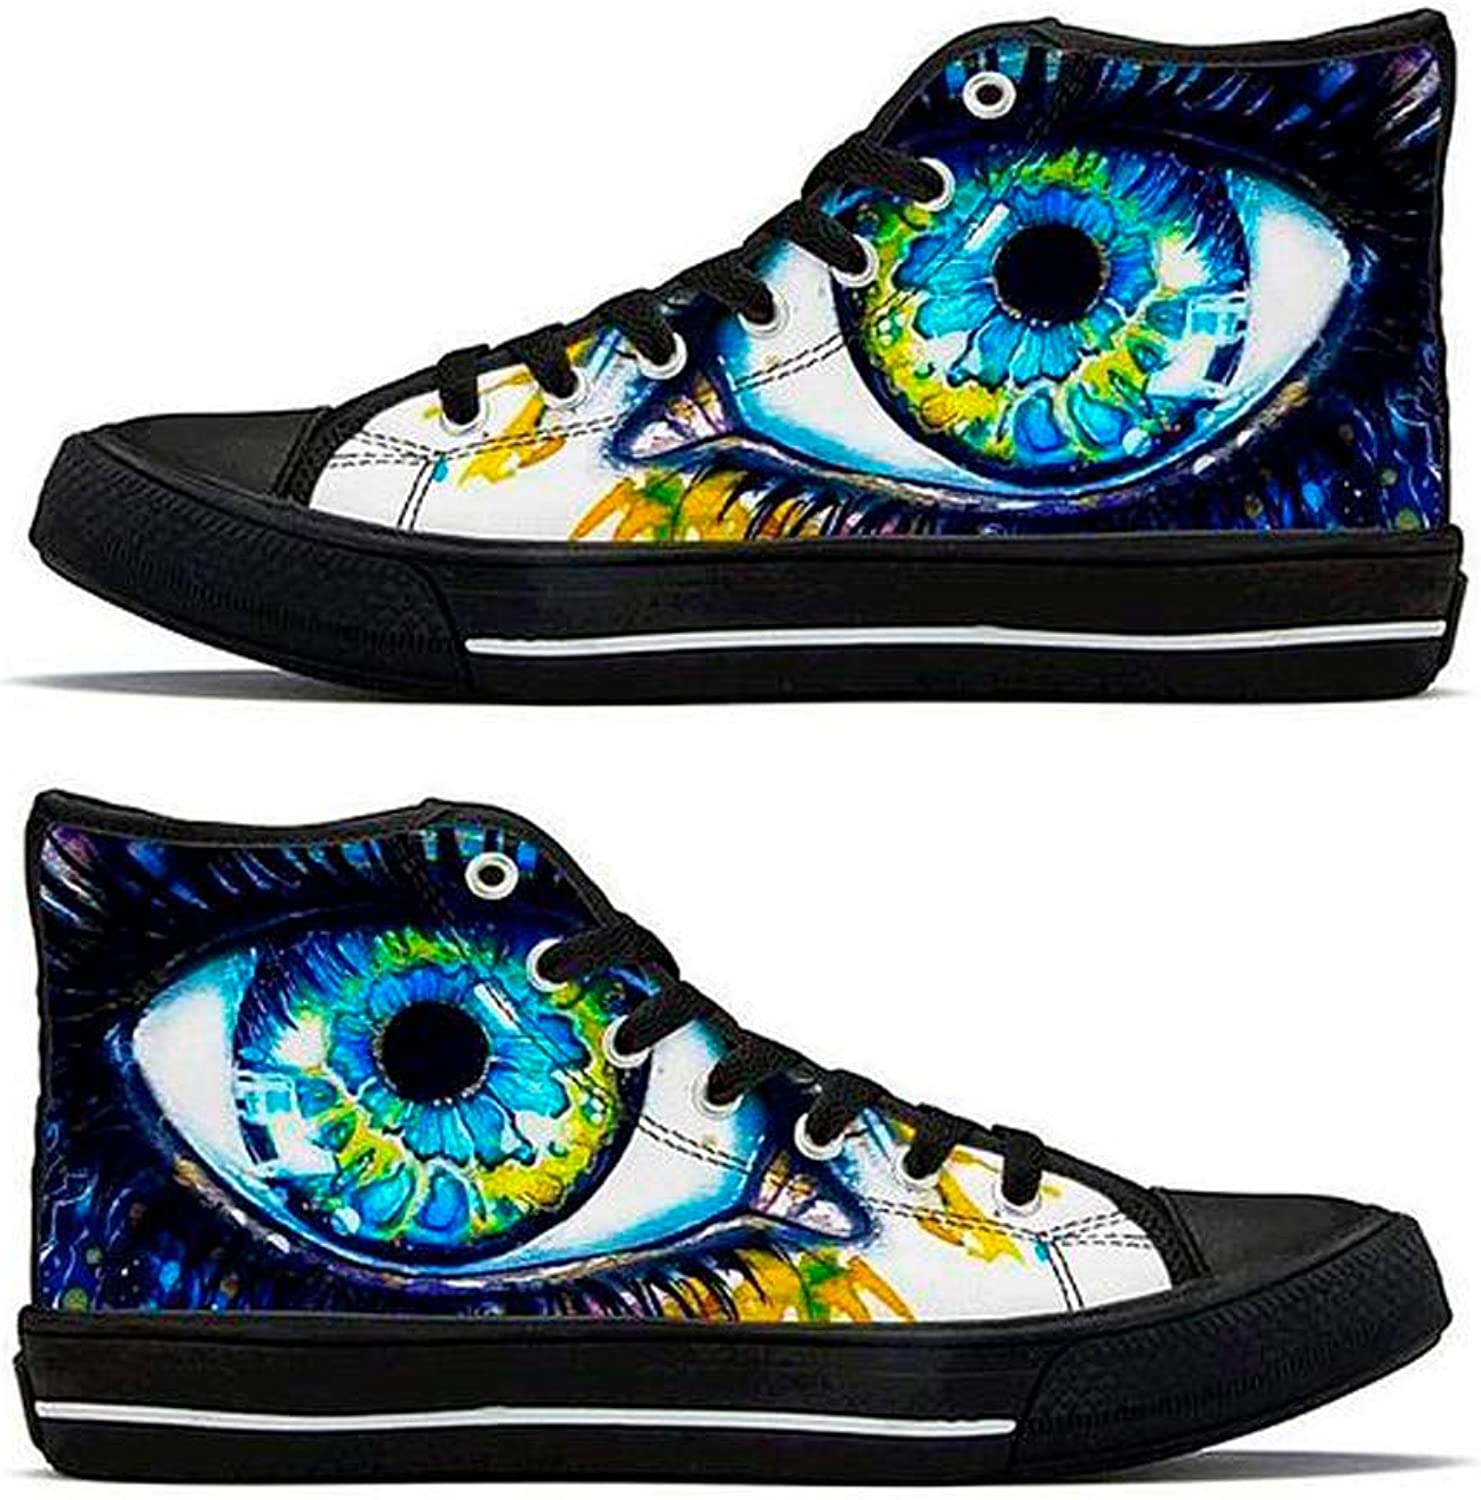 IEDM Eyecop Kopie Psychedelic Vibrant colorful 3D Graphic Print Lace-Up High-Top Comfortable Walking Sports Sneakers